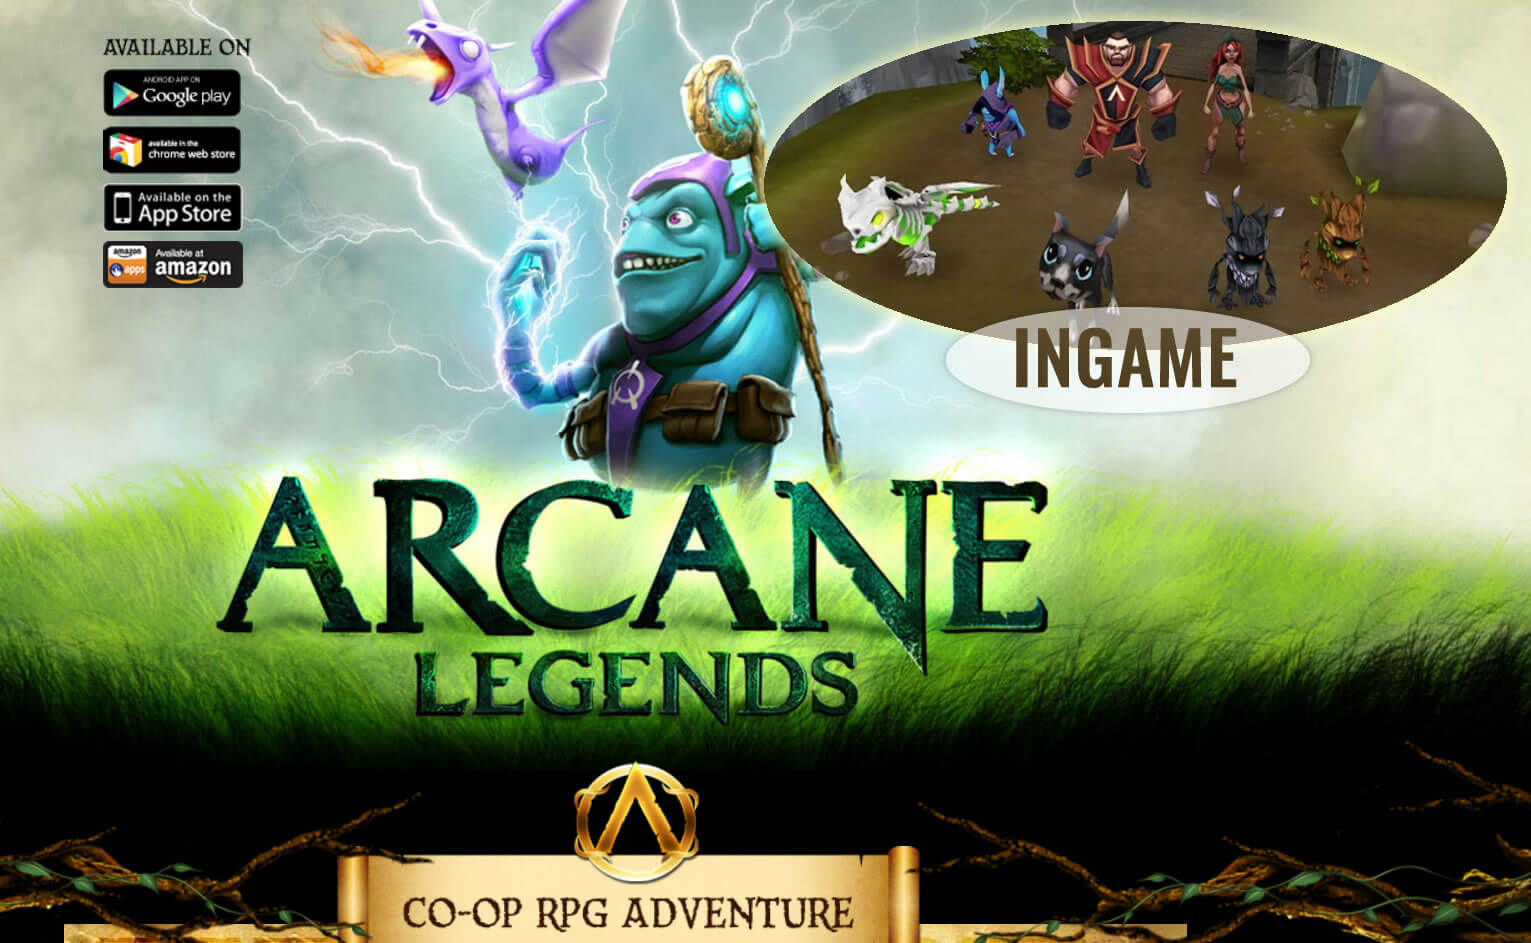 Arcane Legends - Coop adventure RPG